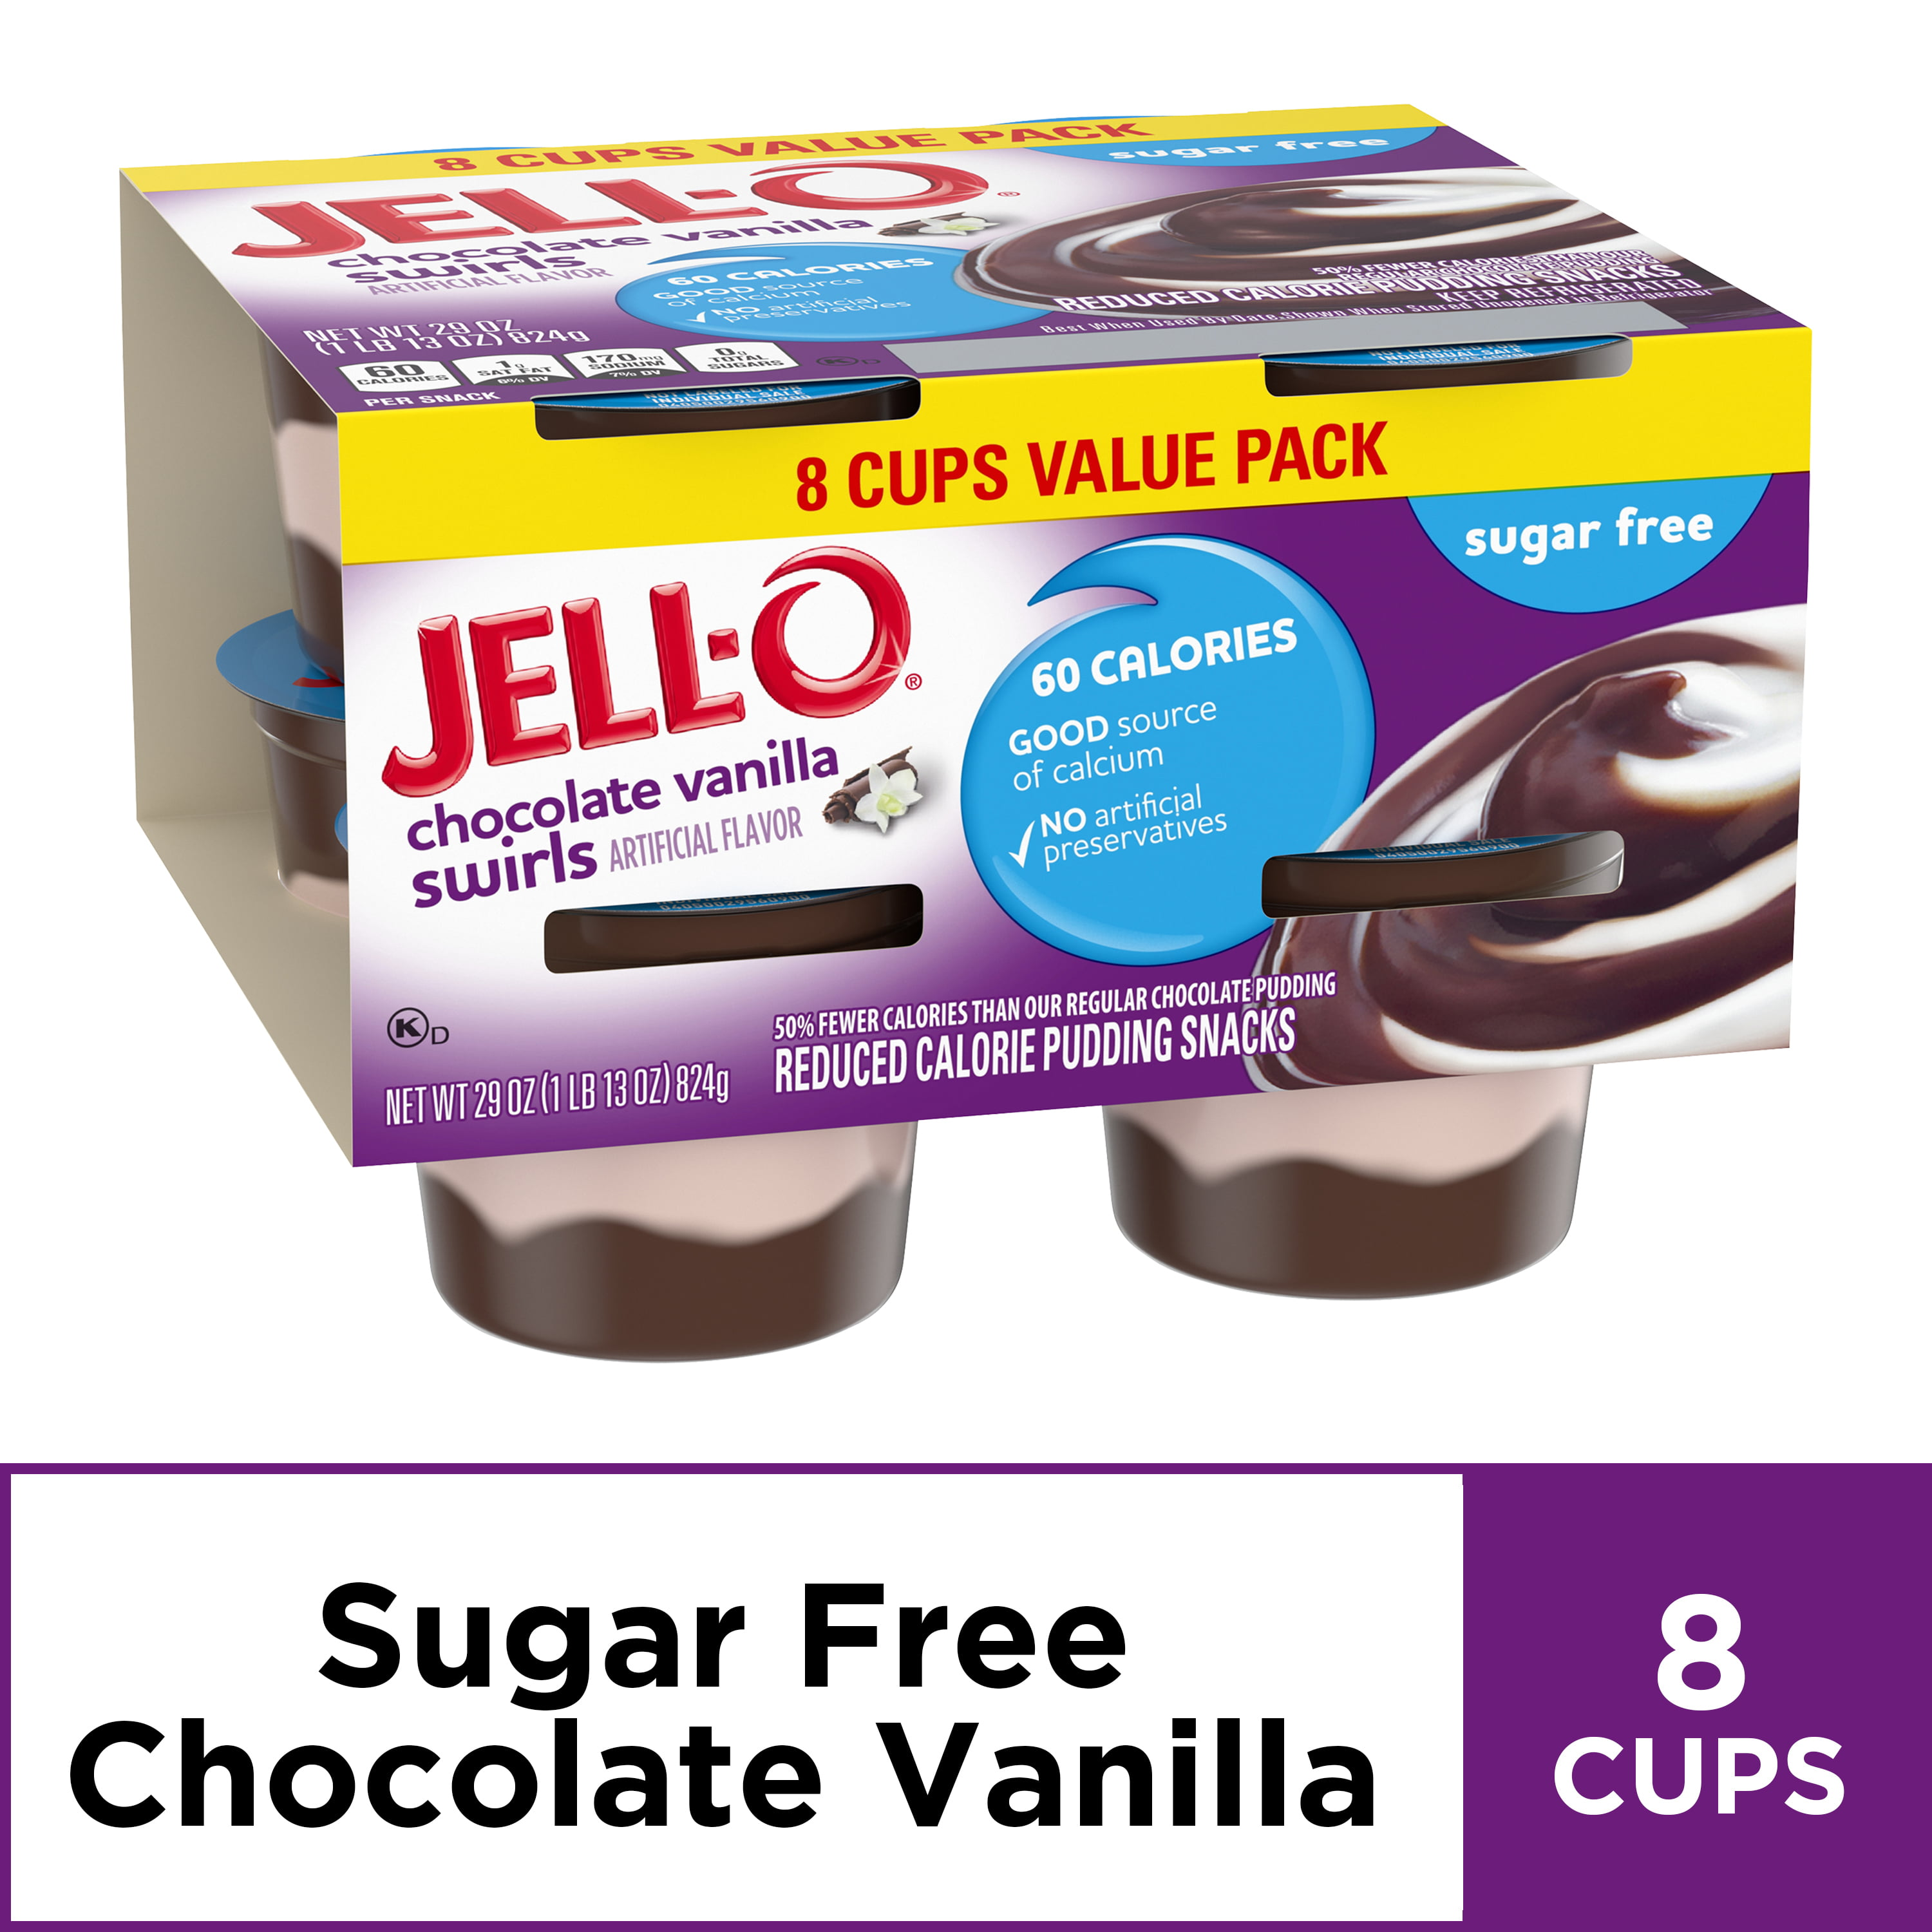 Jello Sugar Free Chocolate Vanilla Swirl Pudding Nutrition Facts Nutritionwalls